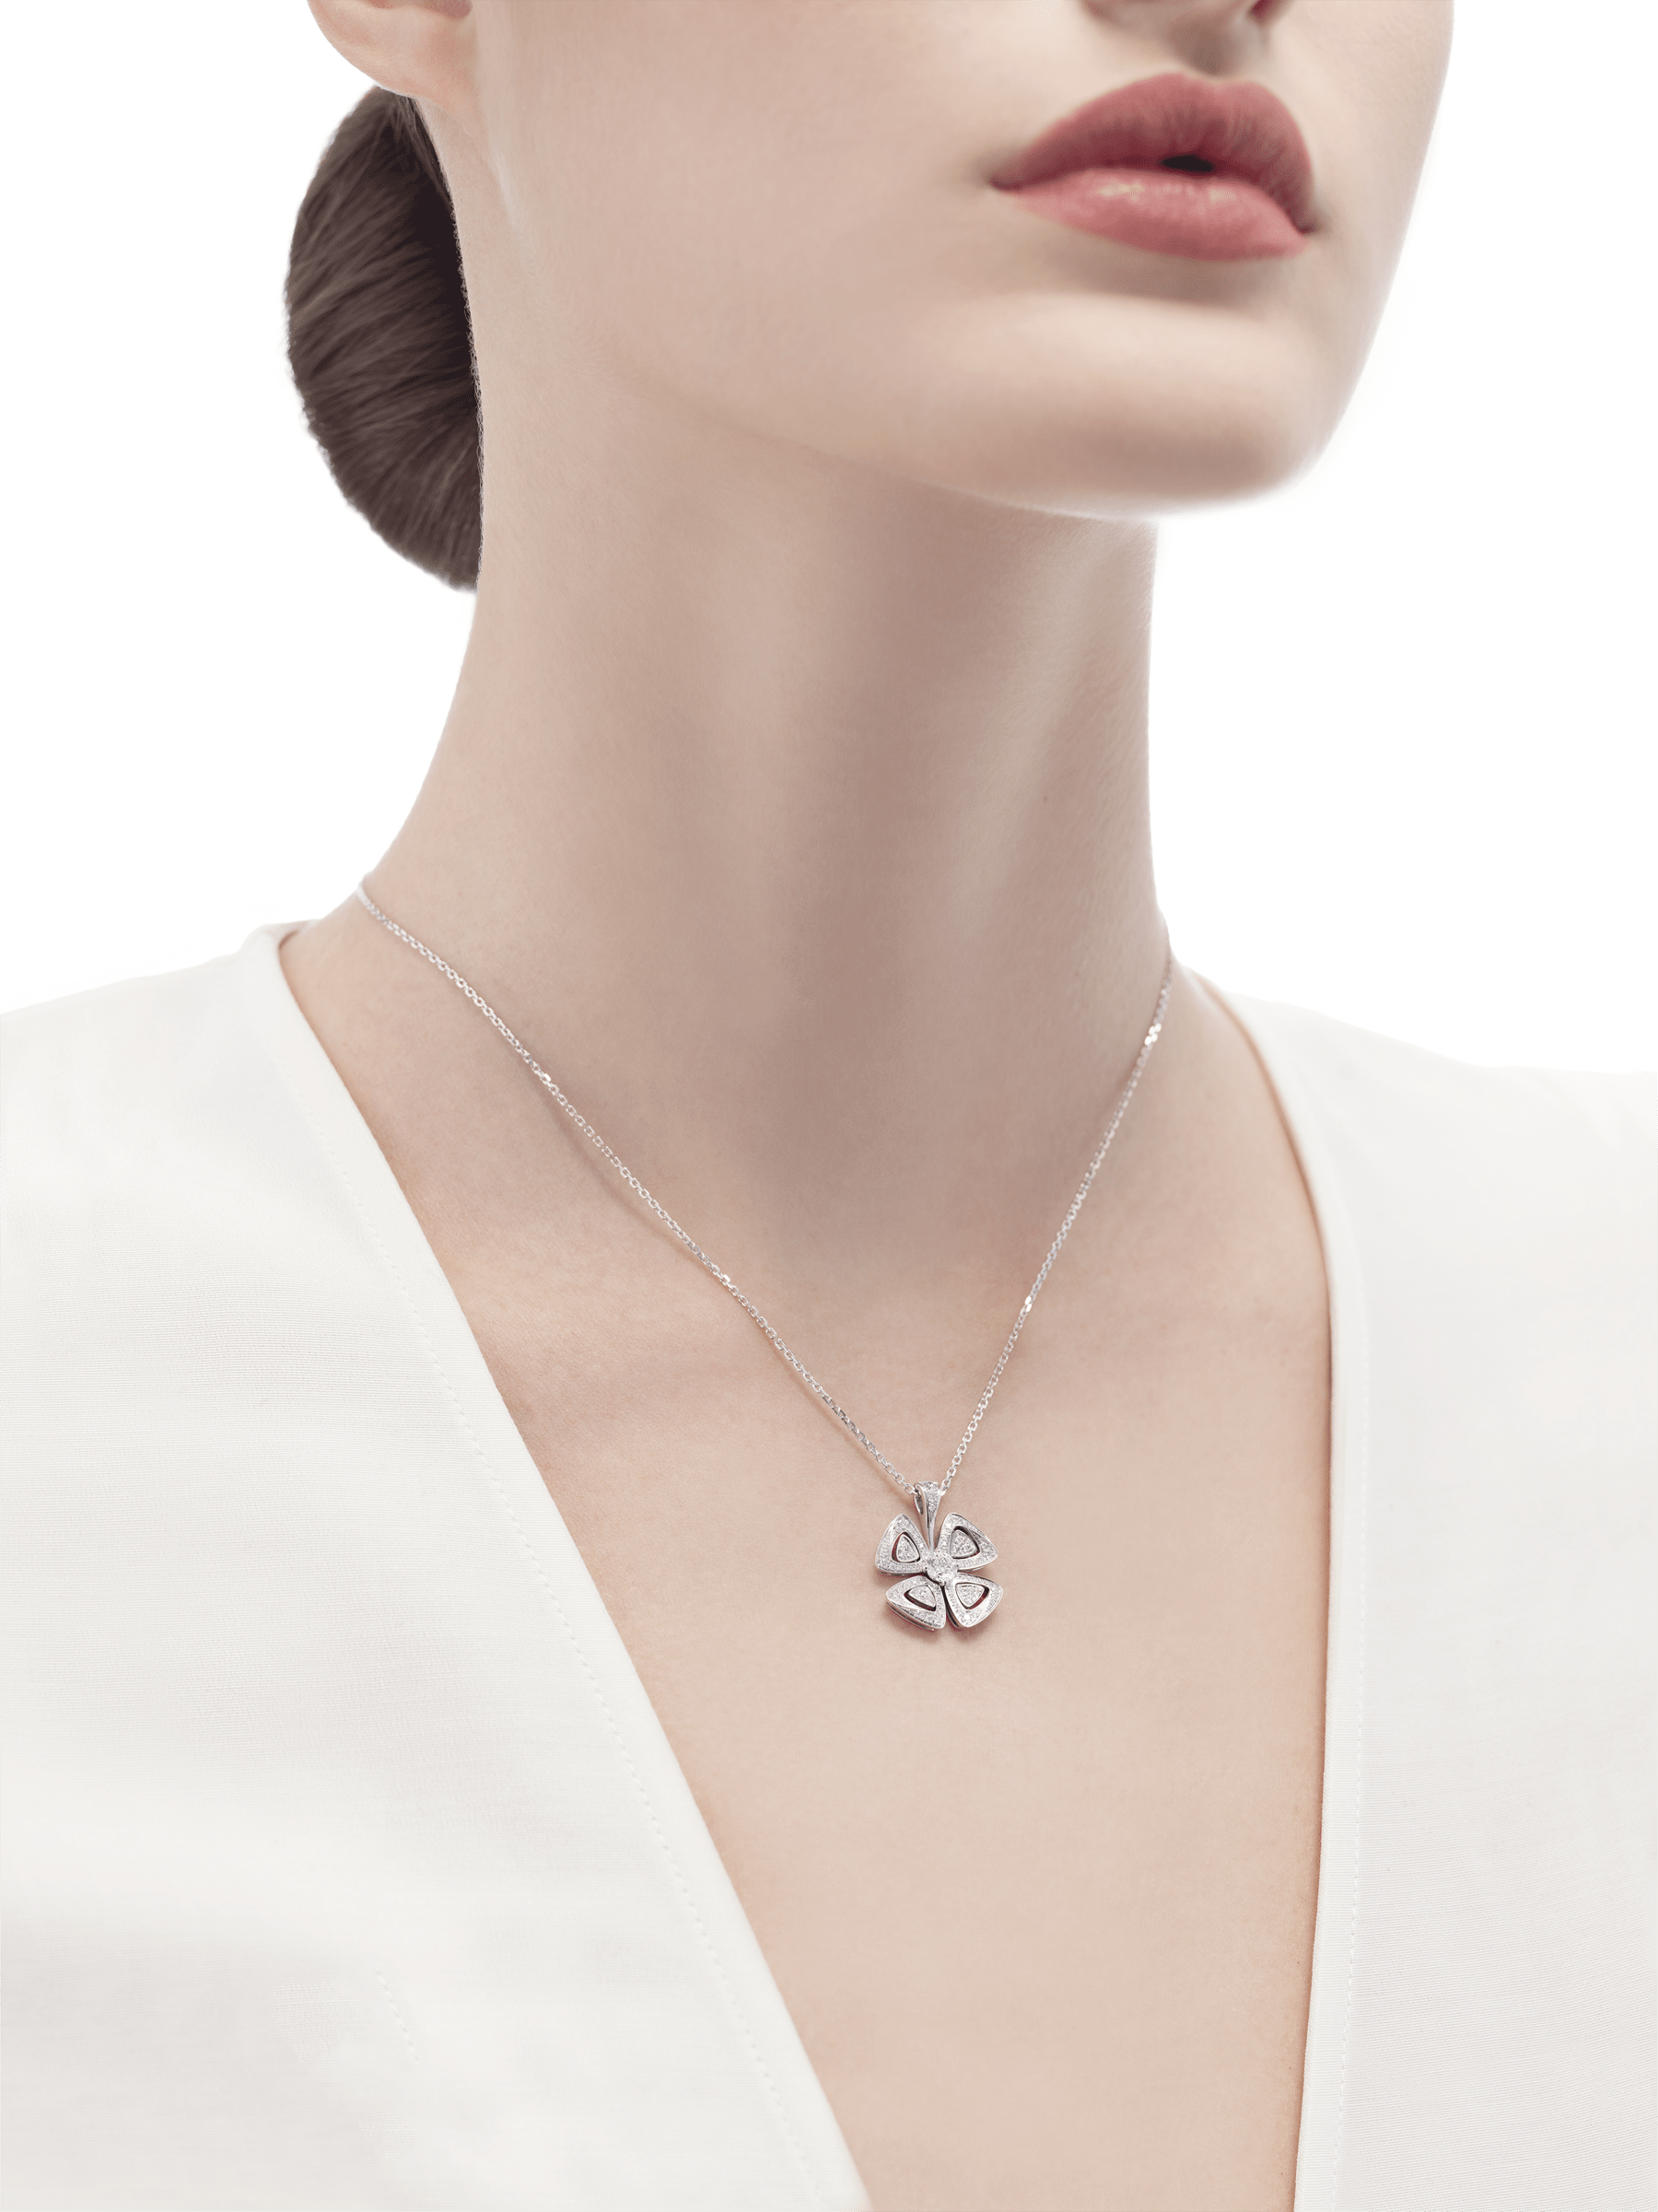 Fiorever 18 kt white gold necklace set with a central diamond (0.30 ct) and pavé diamonds (0.36 ct) 354496 image 5